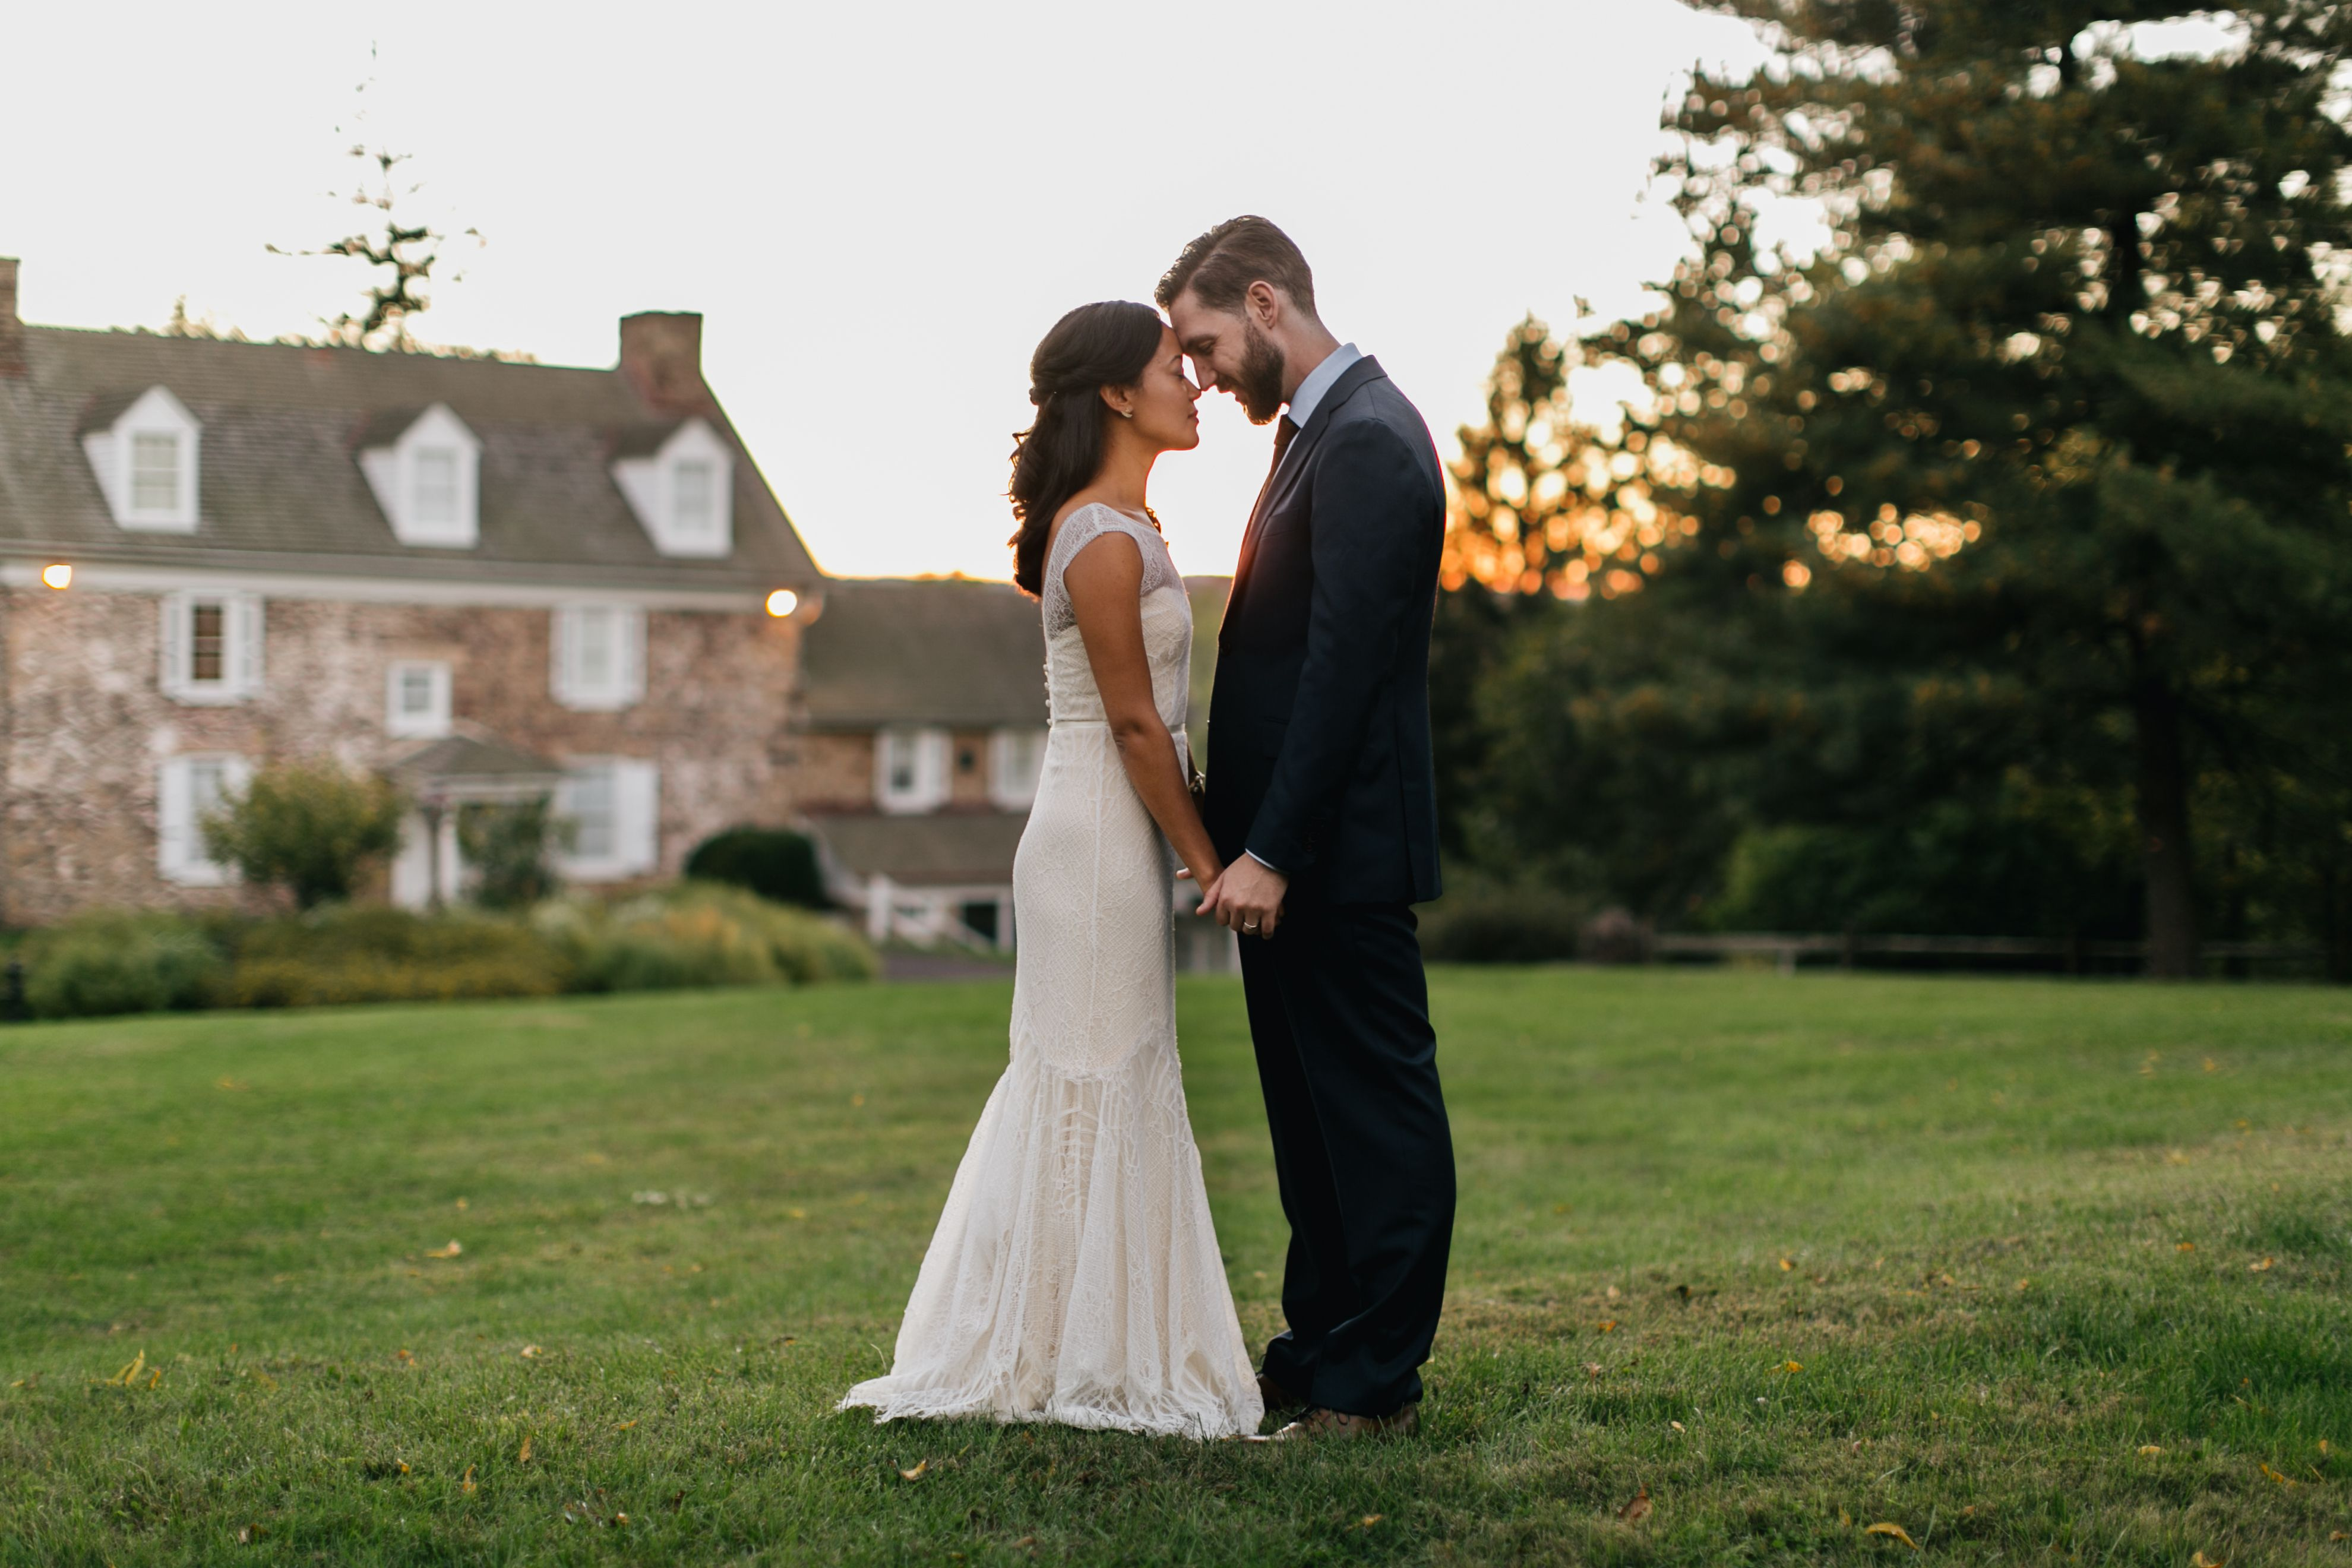 Rebecca Schoneveld Bridal | Blakely Gown | Emily Wren Photography | Heather + Rob